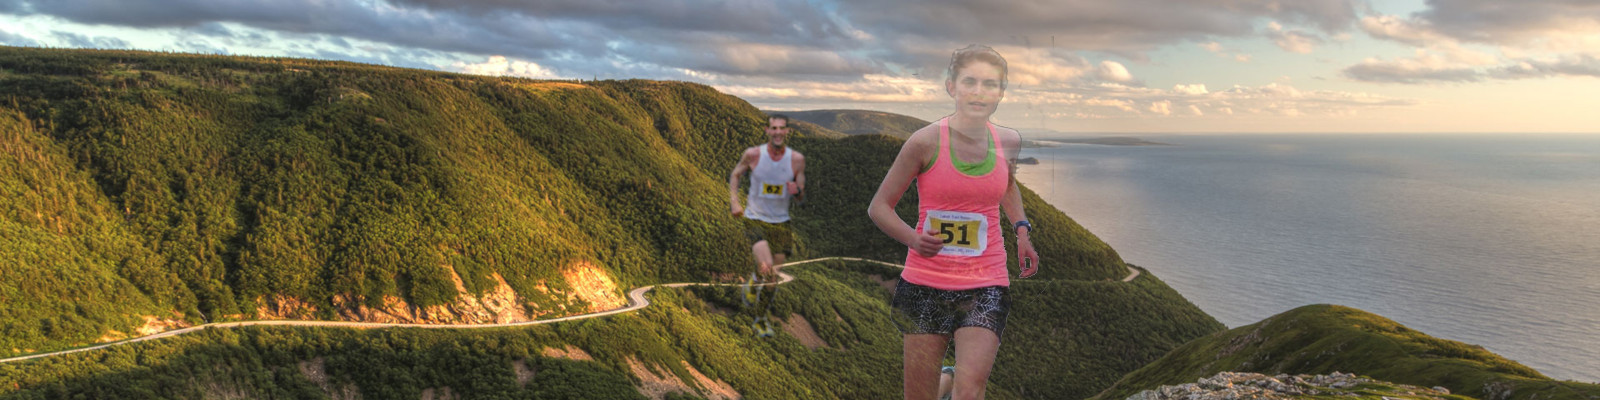 Cabot Trail Relay Race May 23rd & 24th, 2020 post thumbnail image